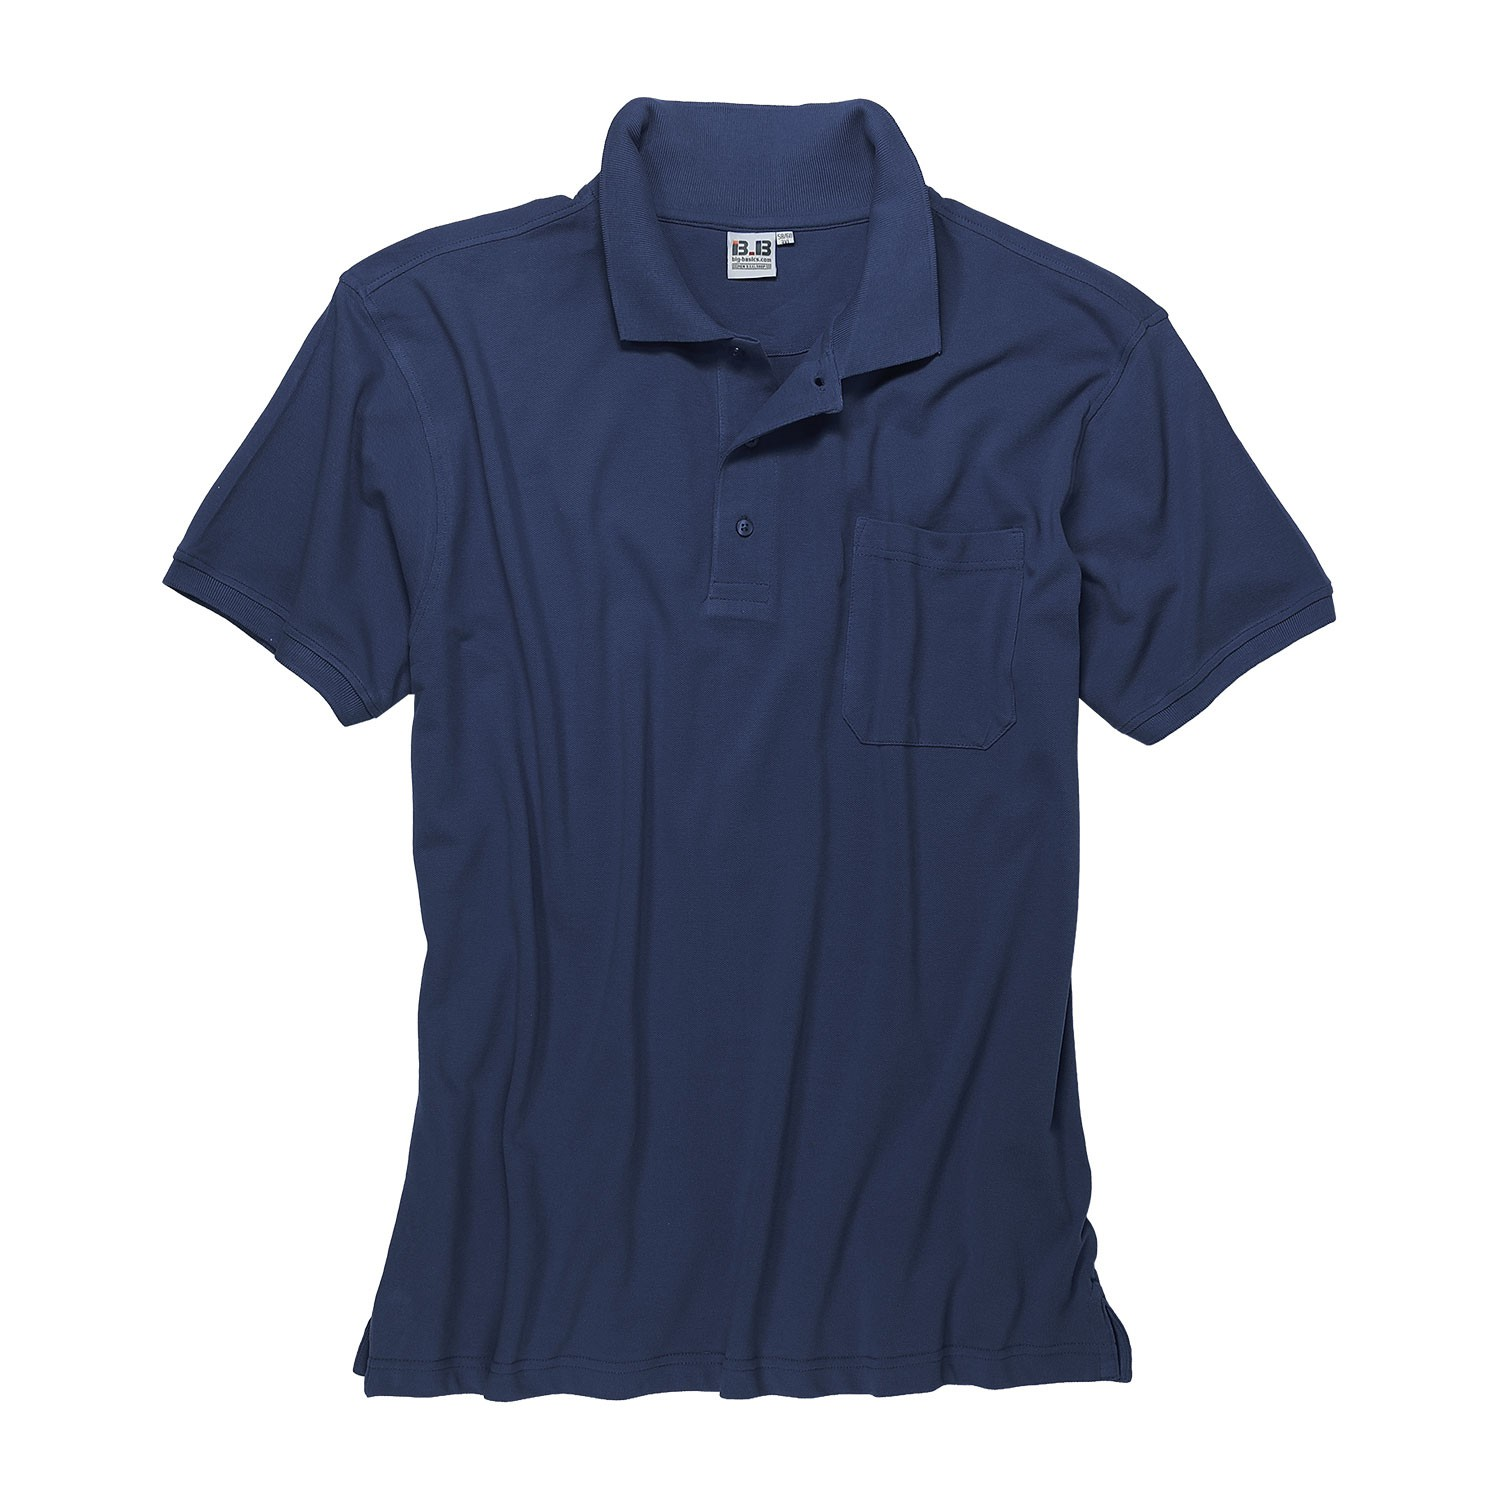 Detail Image to Darkblue polo shirt by Big-Basics in oversizes up to 8XL